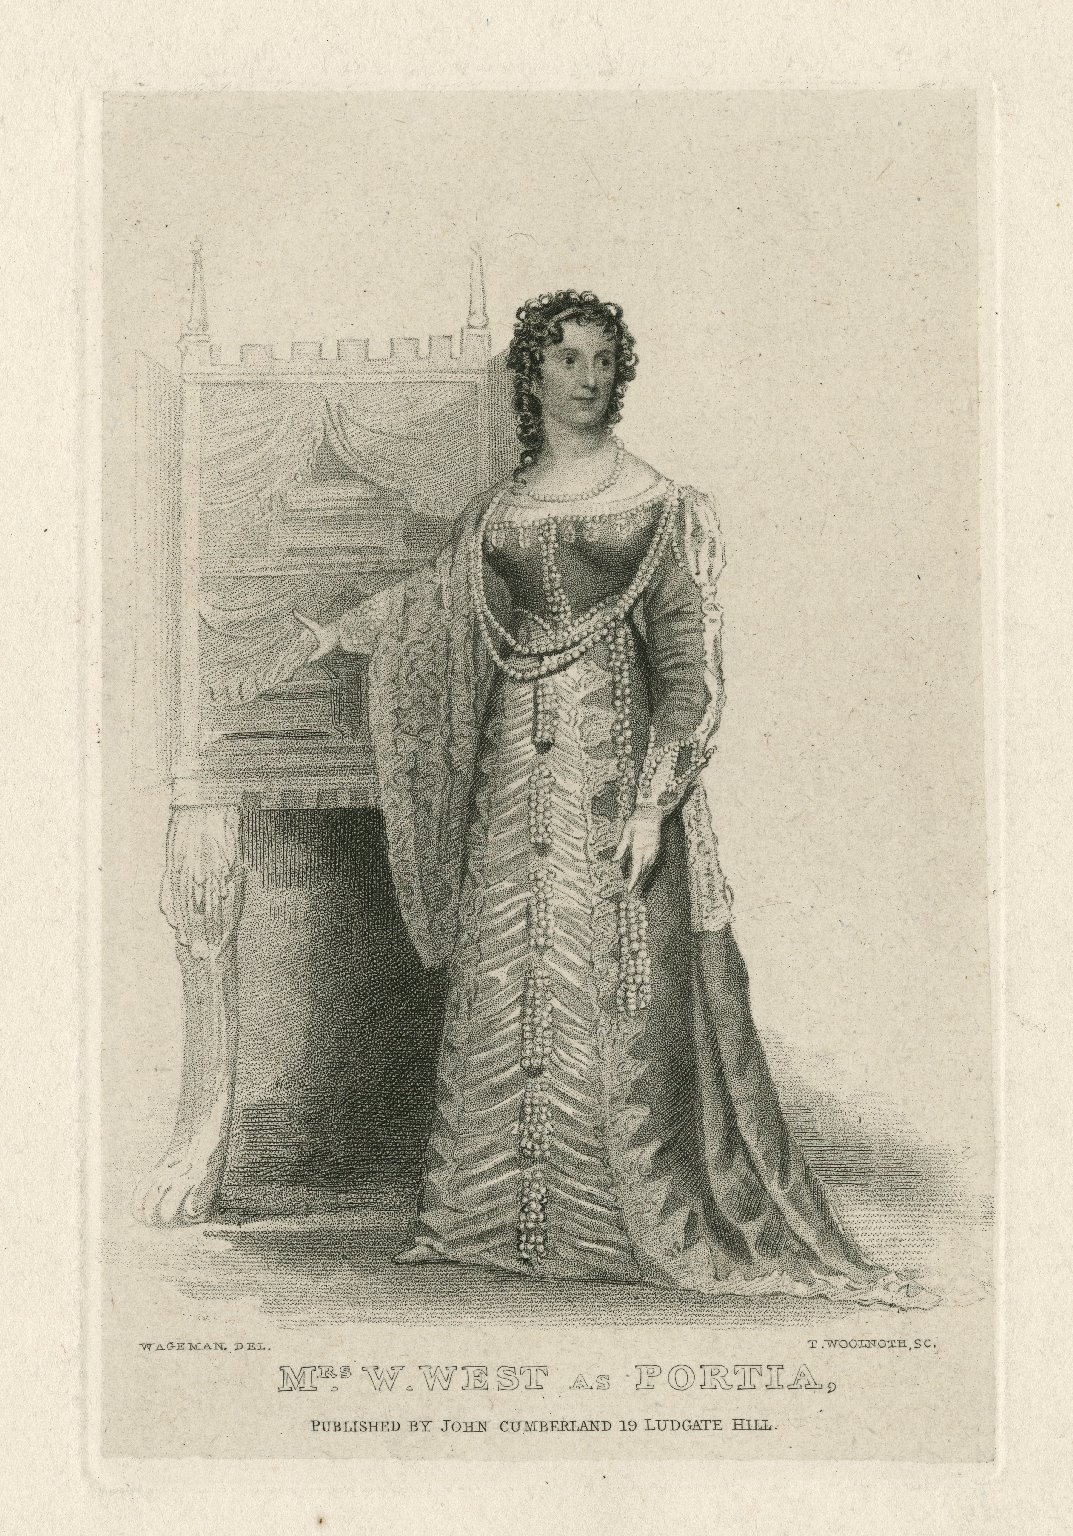 Mrs. W. West as Portia [in Shakespeare's Merchant of Venice] [graphic] / Wageman, del. ; T. Woolnoth, sc.